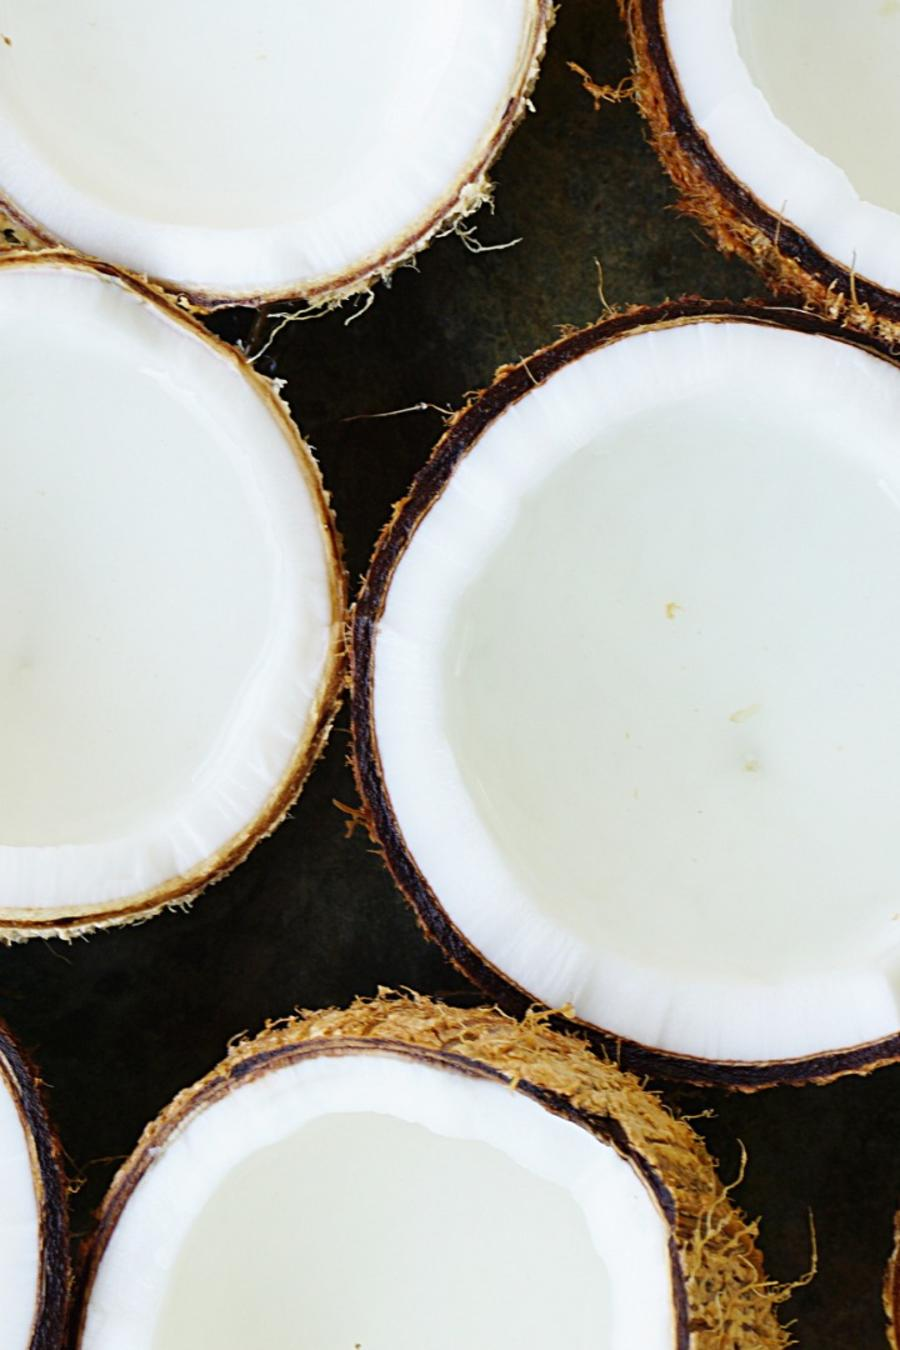 Coconut halves on a plate.